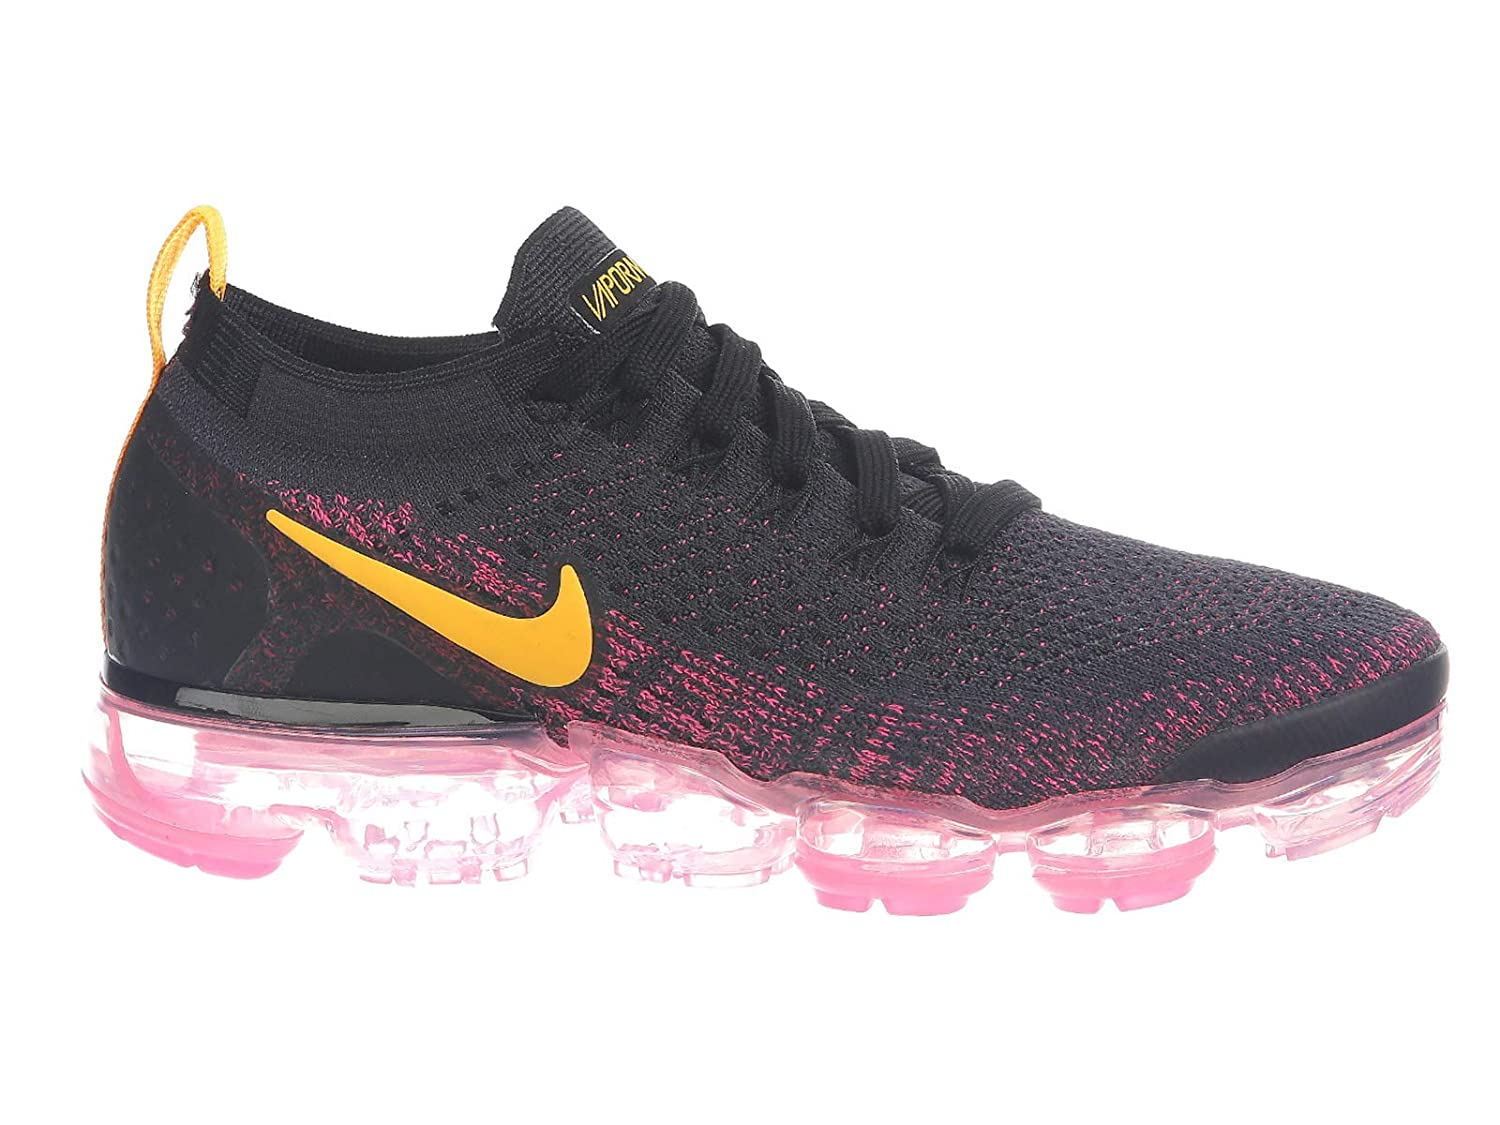 huge discount 8261b 6224e NIKE Women's Air Vapormax Flyknit 2 Running Shoes (8.5, Pink/Black)